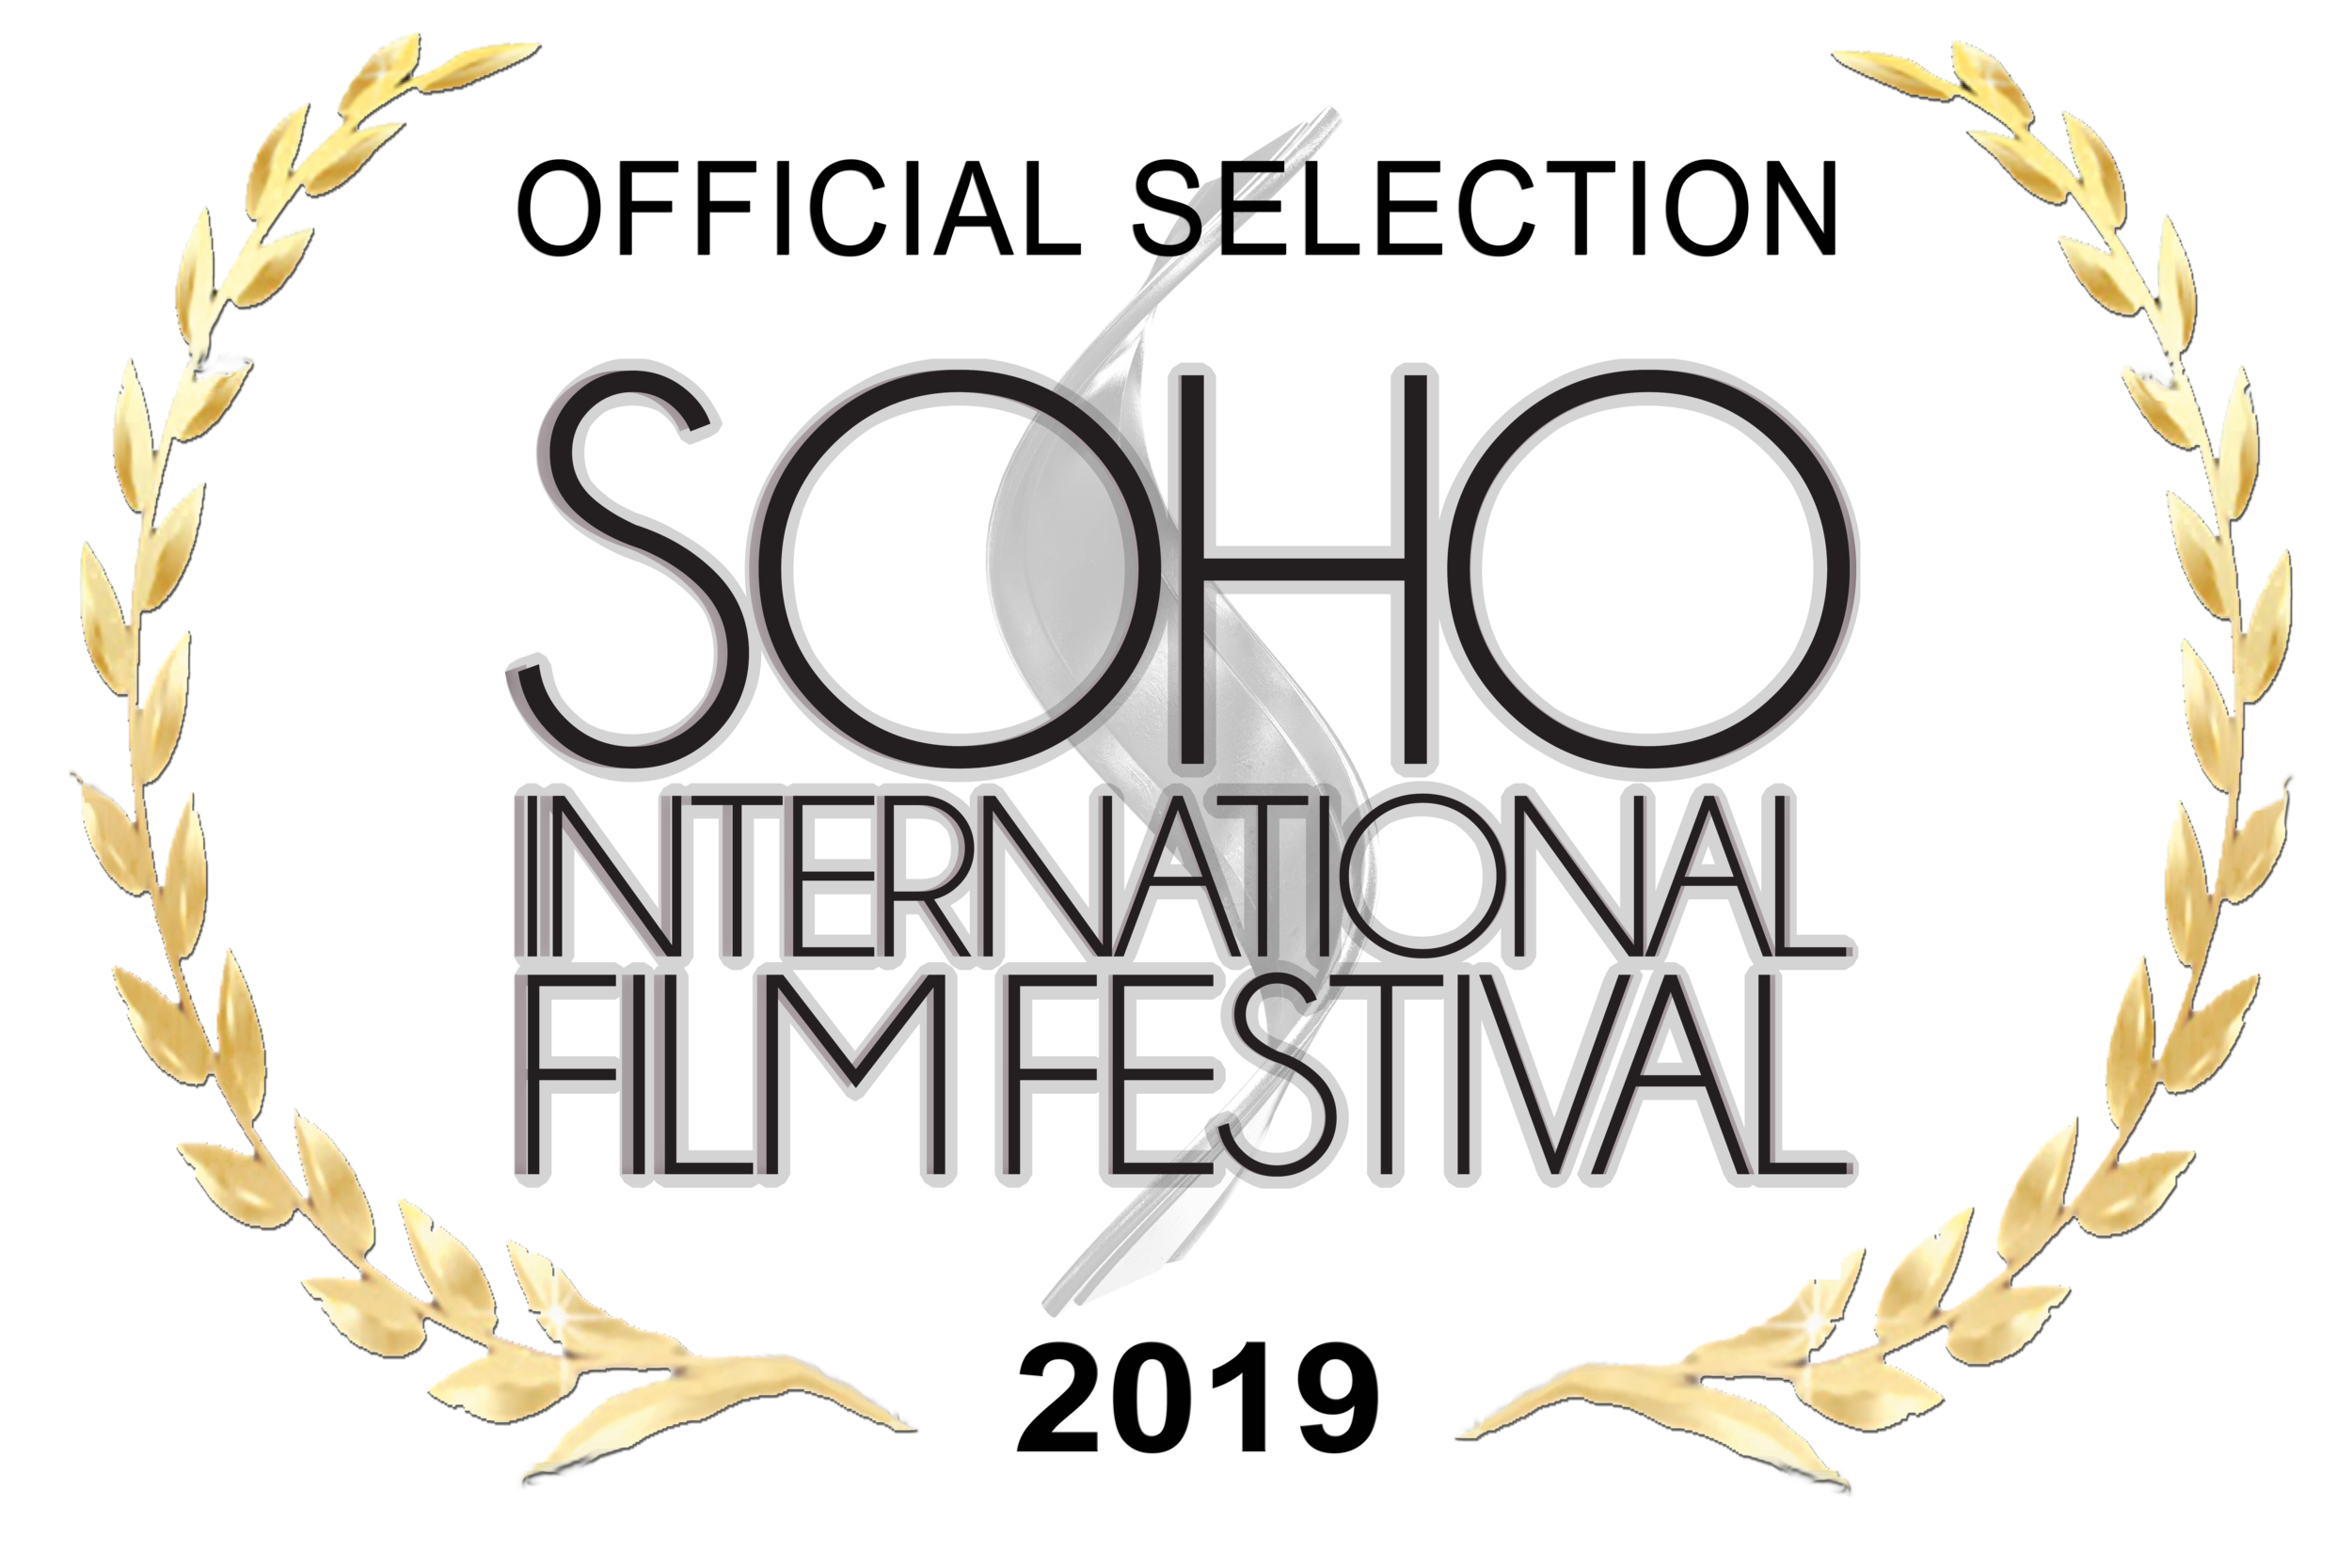 2019_OfficialSelection_SohoFilmFest_BlackGOLD.png